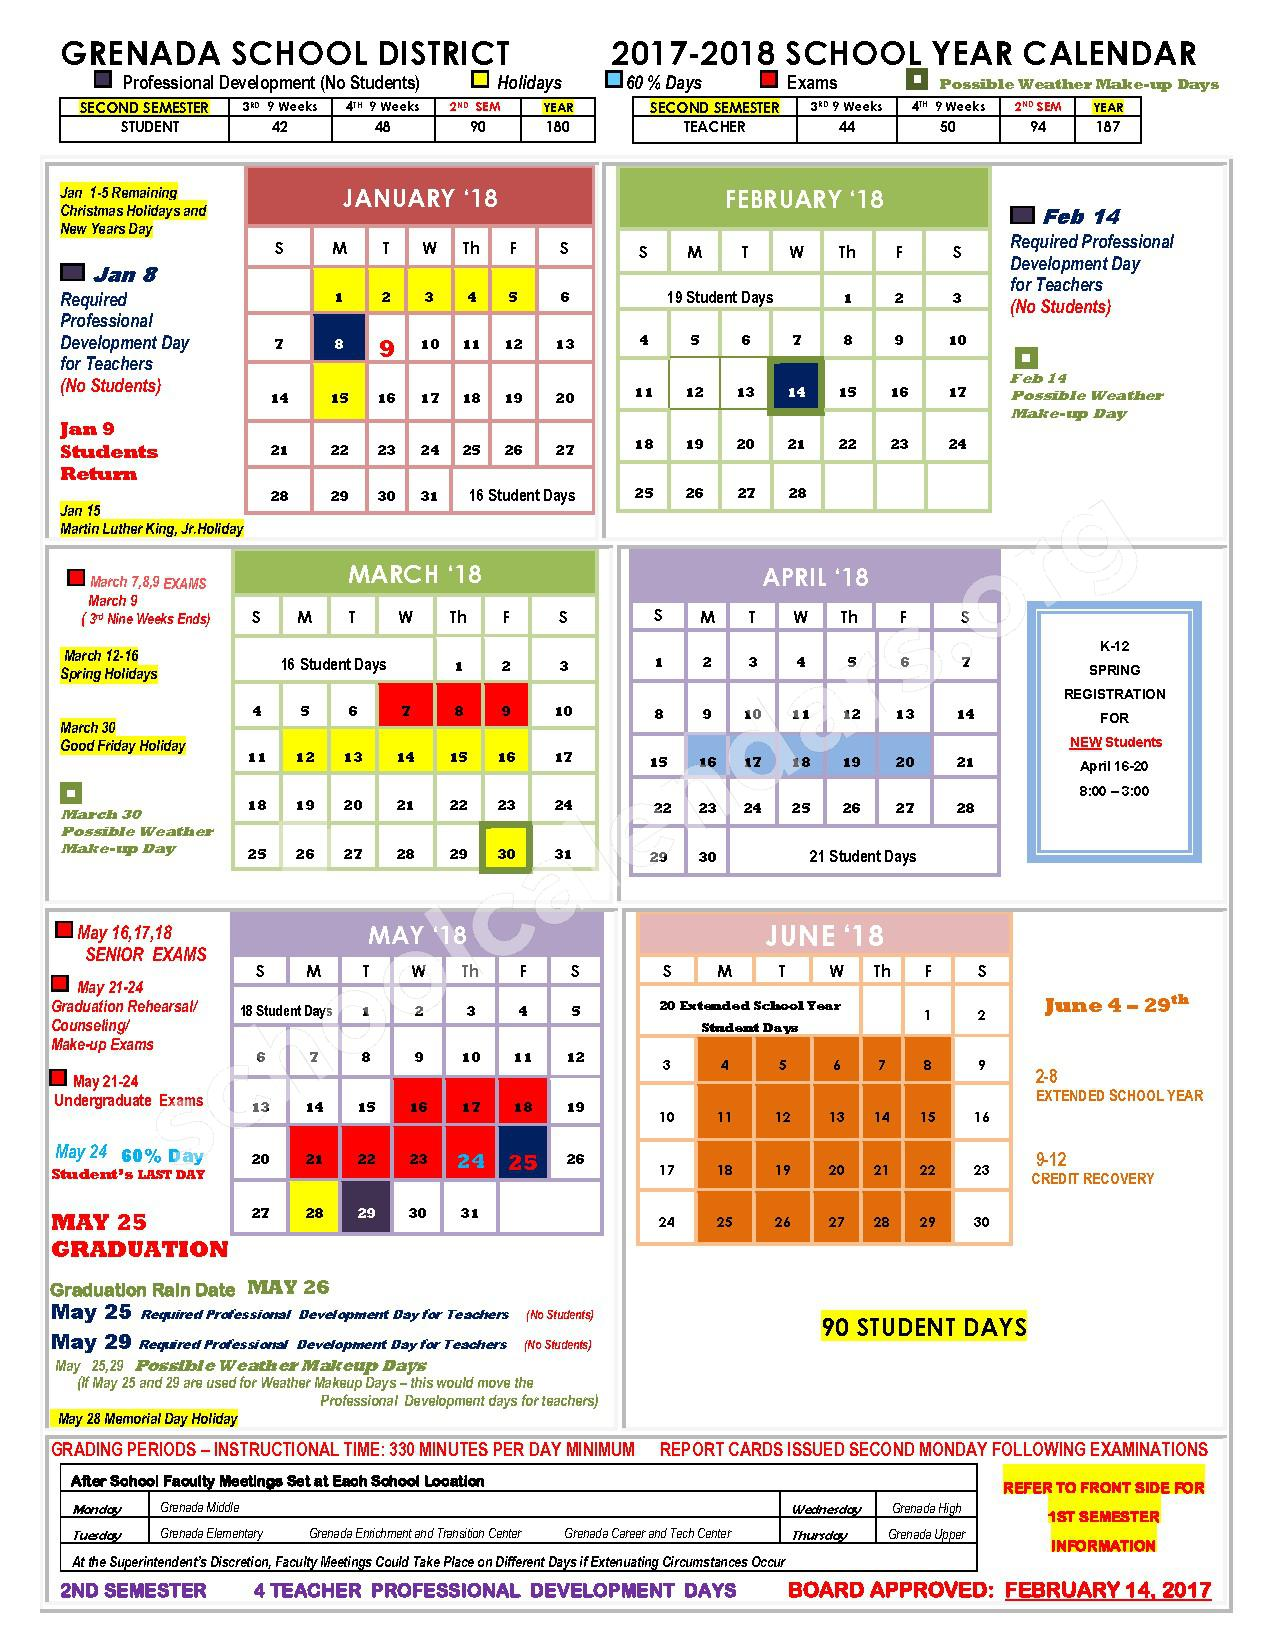 School Calendar 2018 Brunei : Grenada school district calendars ms